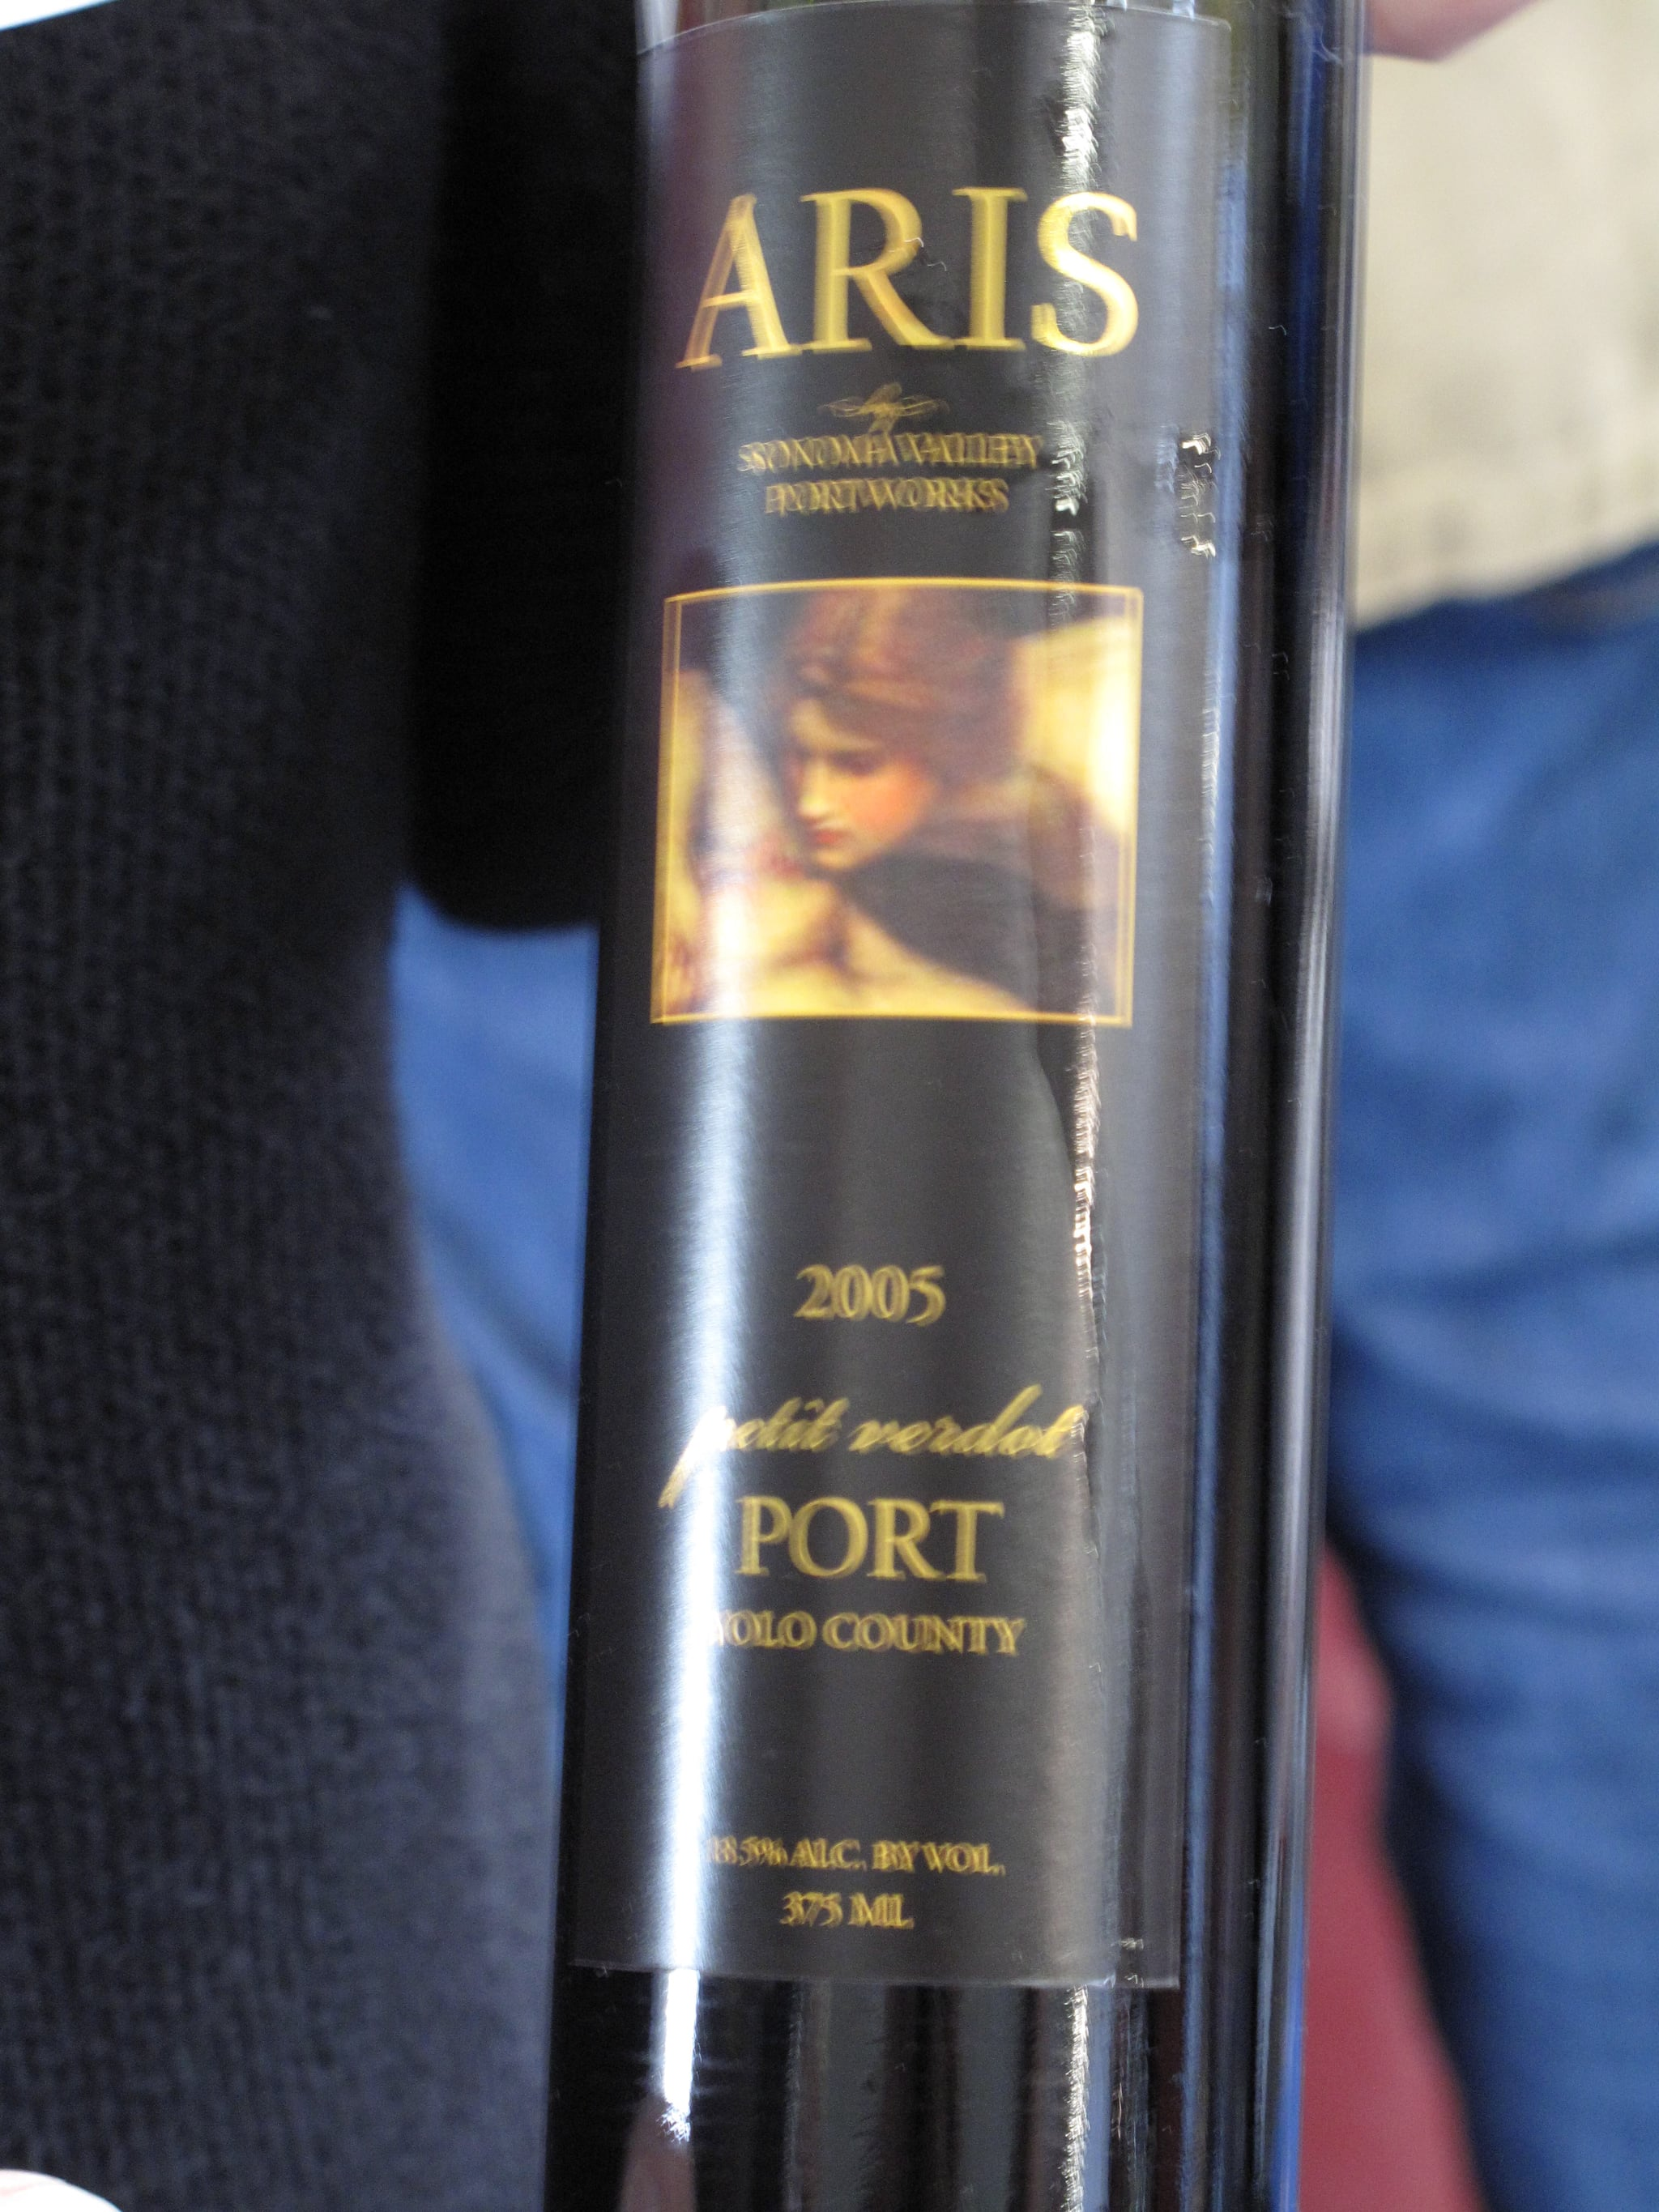 Considering I rarely see Petit Verdot used as anything but a blending grape, I was shocked when the pourer pulled out a bottle of Port that had been hiding. It was made with nothing but Petit Verdot.<br />